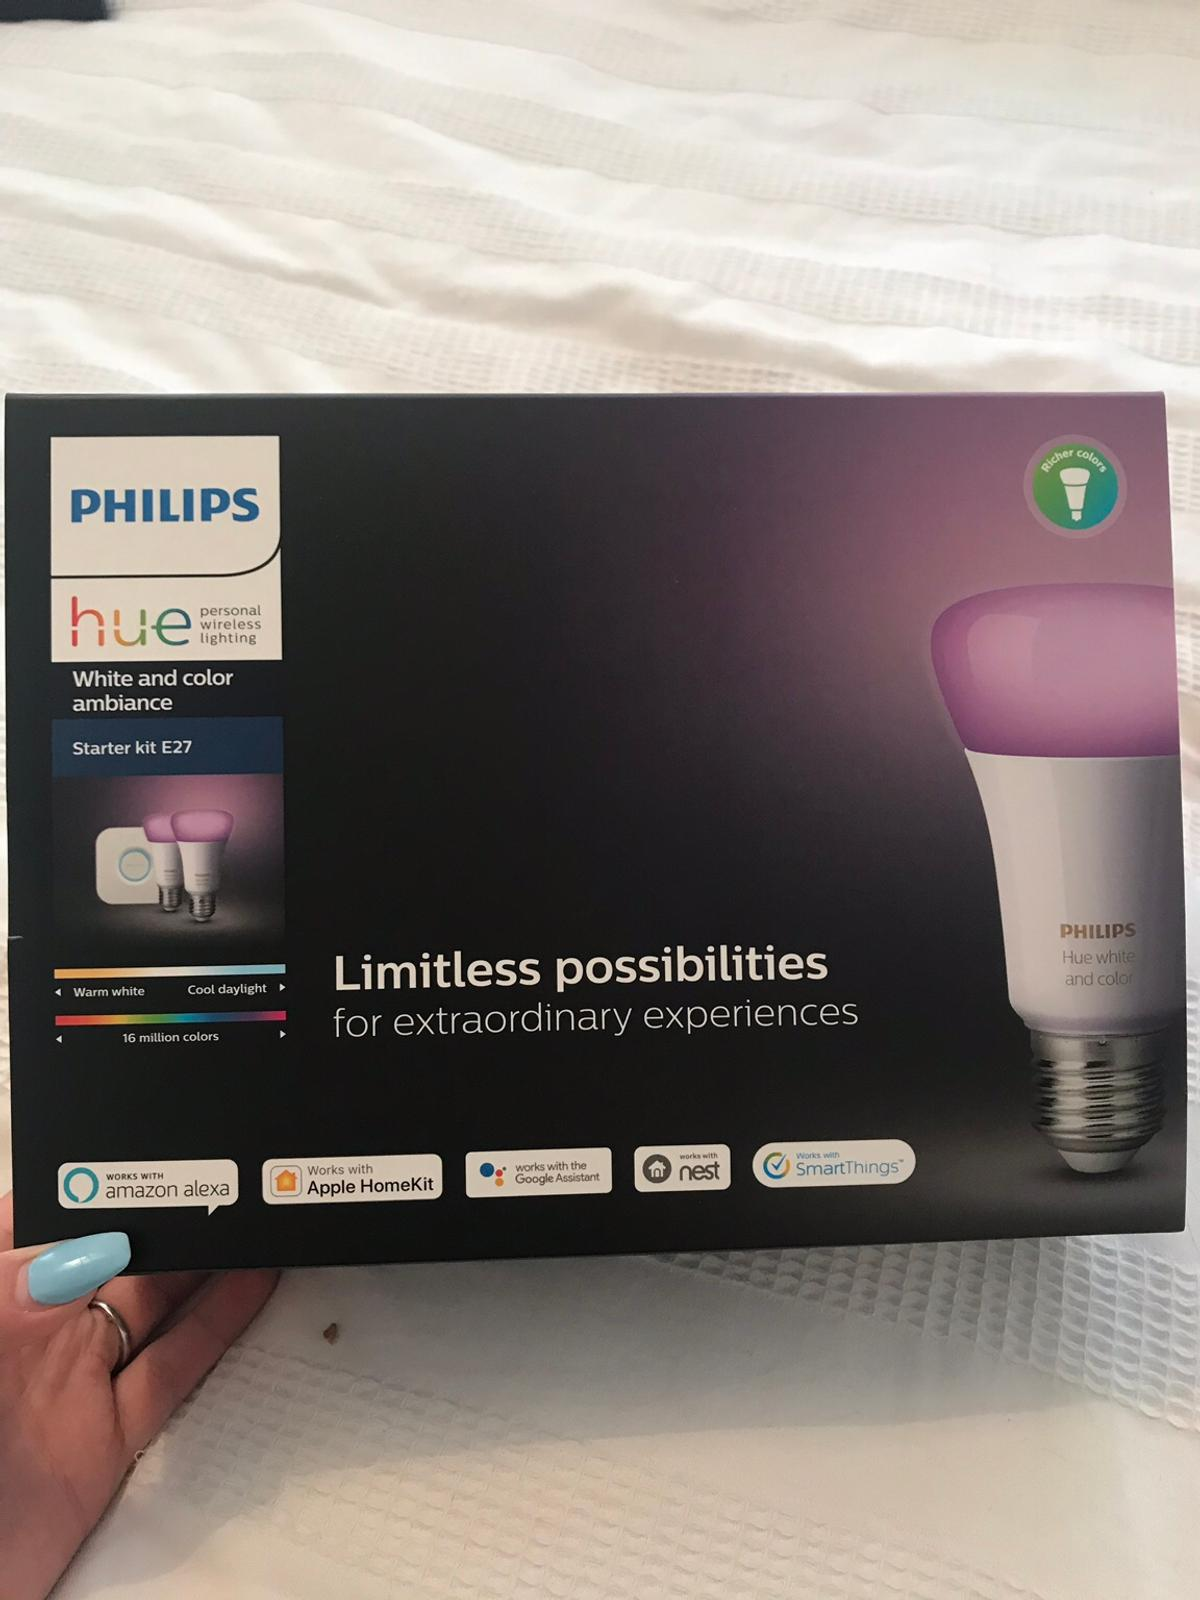 Philips hue personal wireless lighting in ME2 Strood for